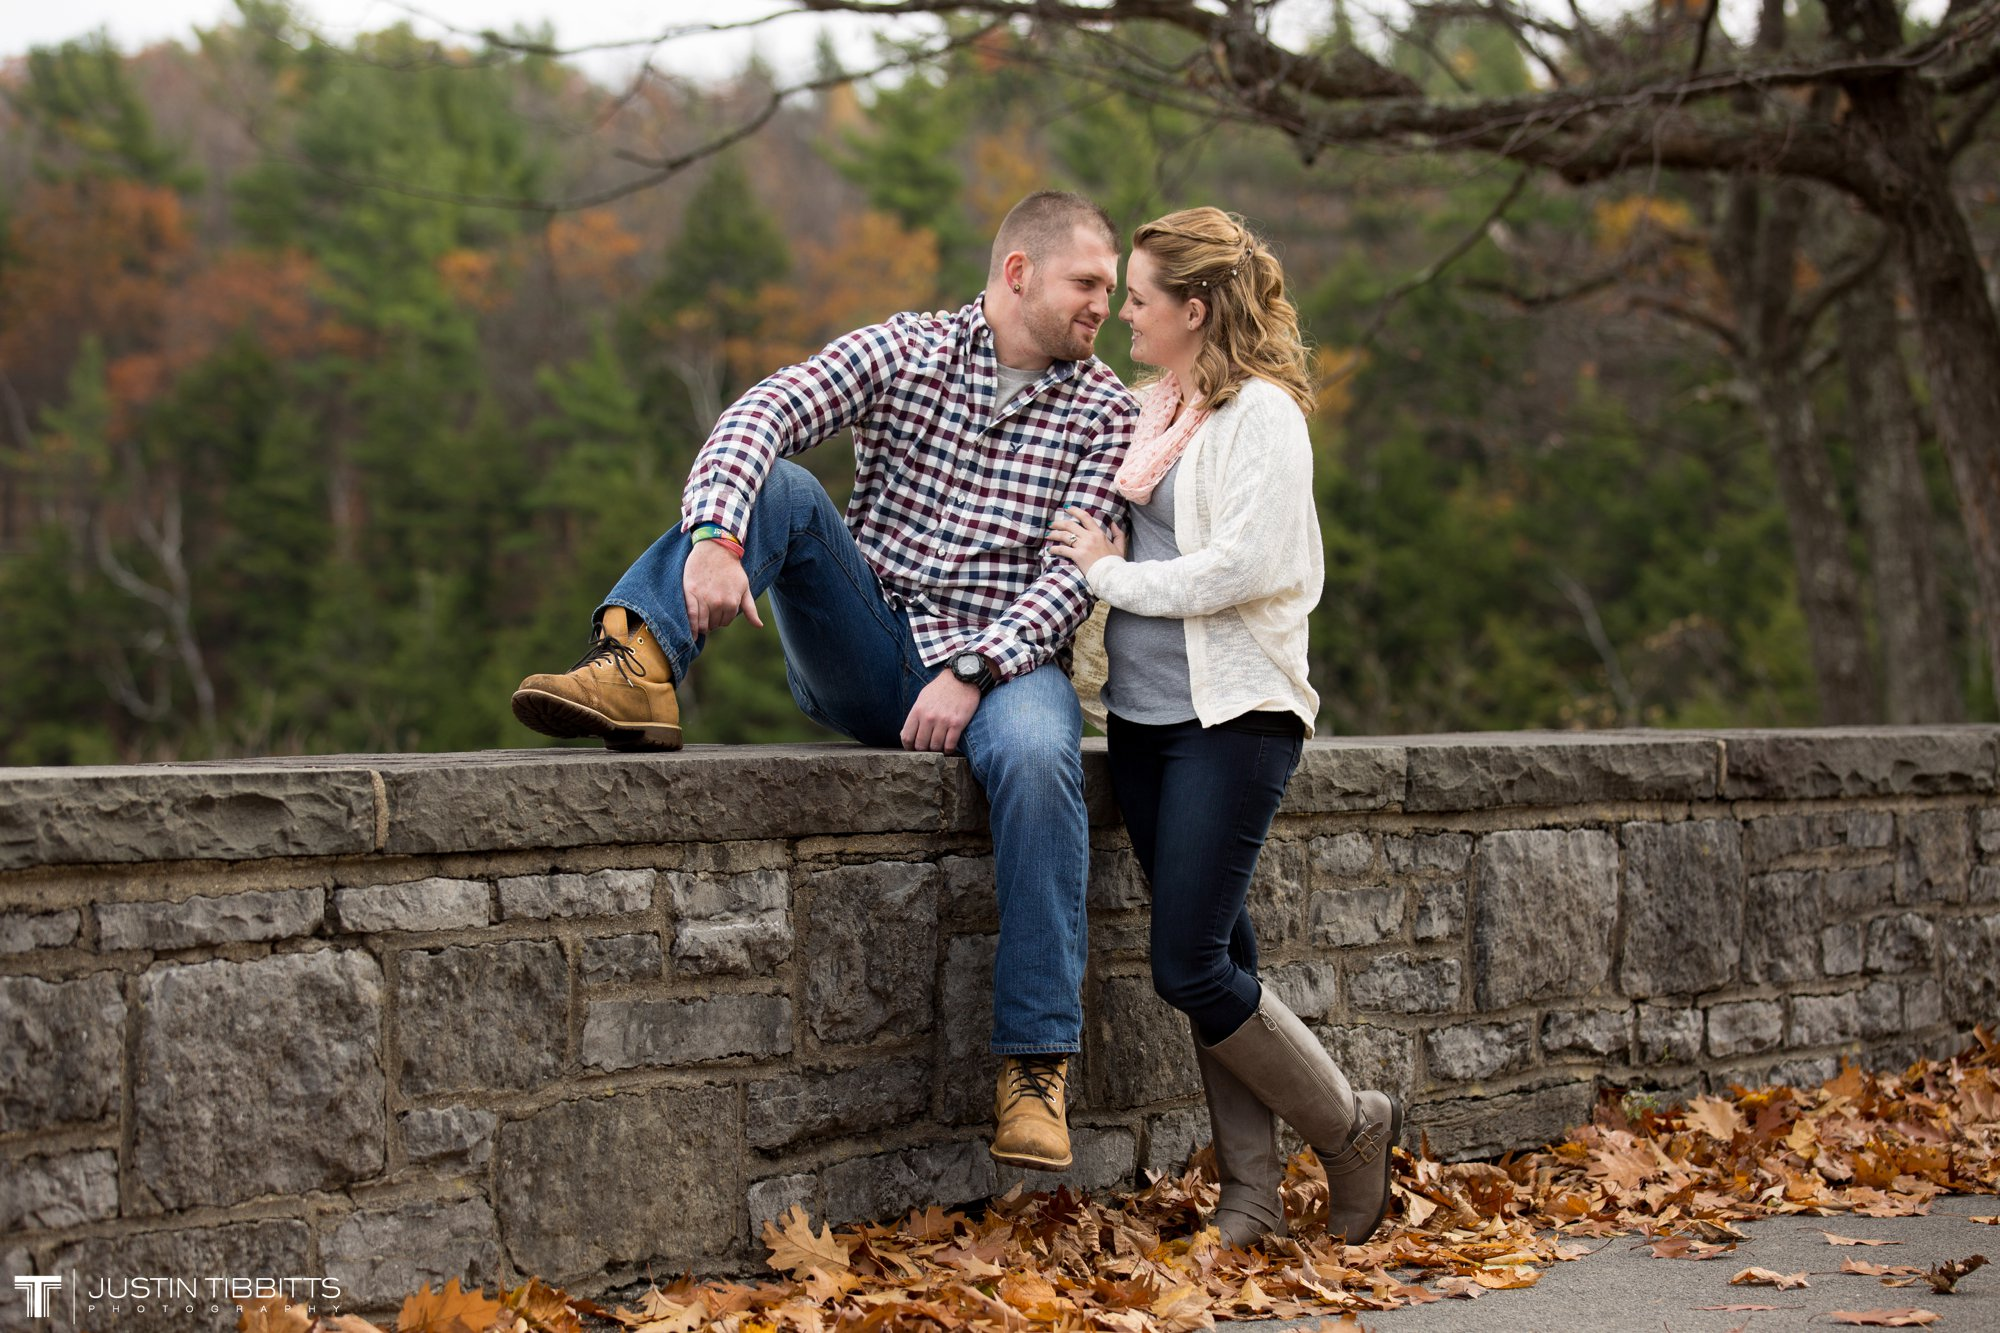 Justin Tibbitts Photography Ashlee and Steves Thatcher Park, New York Engagement Shoot-10